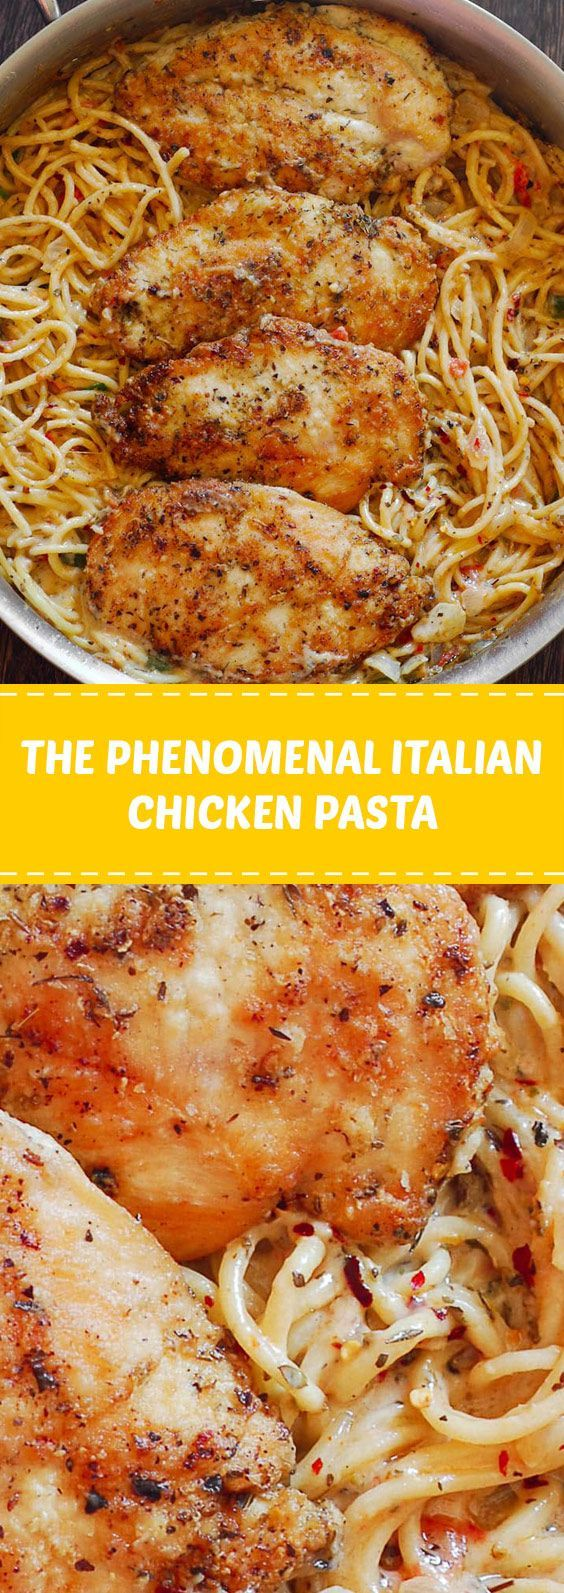 The Phenomenal Italian Chicken Pasta With Only 30 Minutes Of Total Work This Dinner Recipe Pasta Recipes Easy Fast Italian Chicken Pasta Easy Pasta Recipes